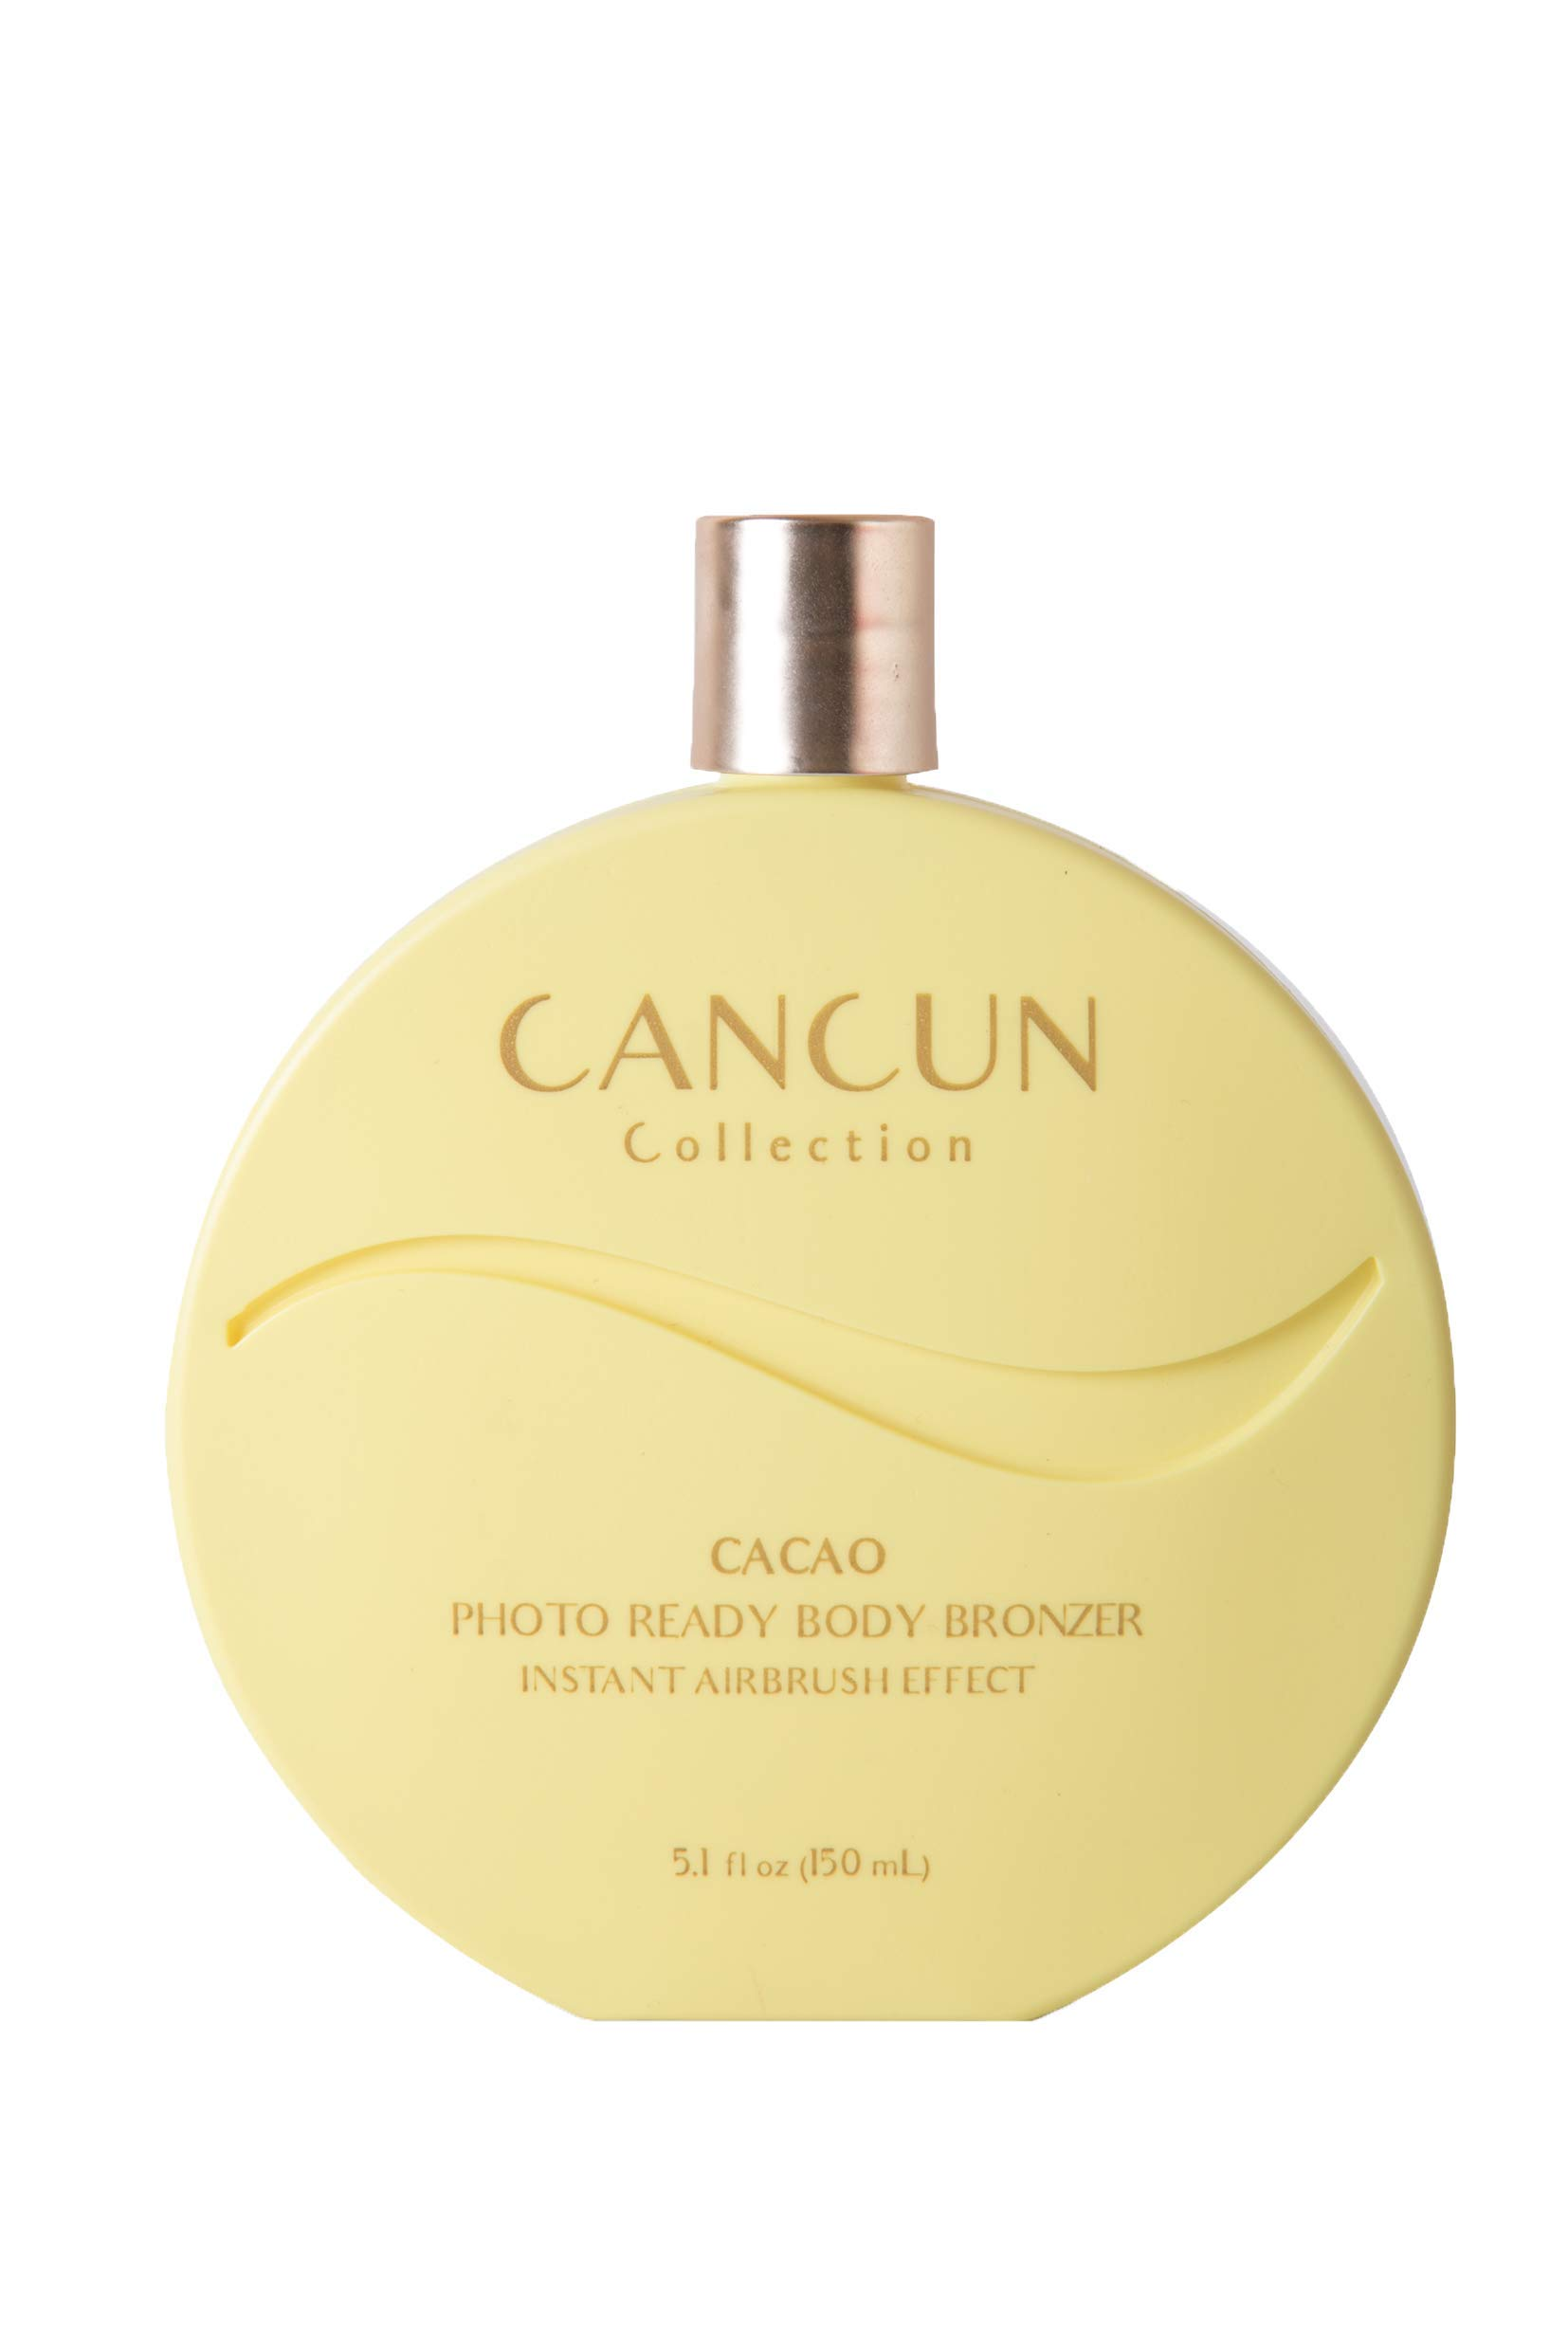 Cancun Collection Cacao Body Bronzer - Superfood Infused Sunless Tanning Lotion with Cacao 5.1 fl.oz, For Instant Tan in 1 minute.